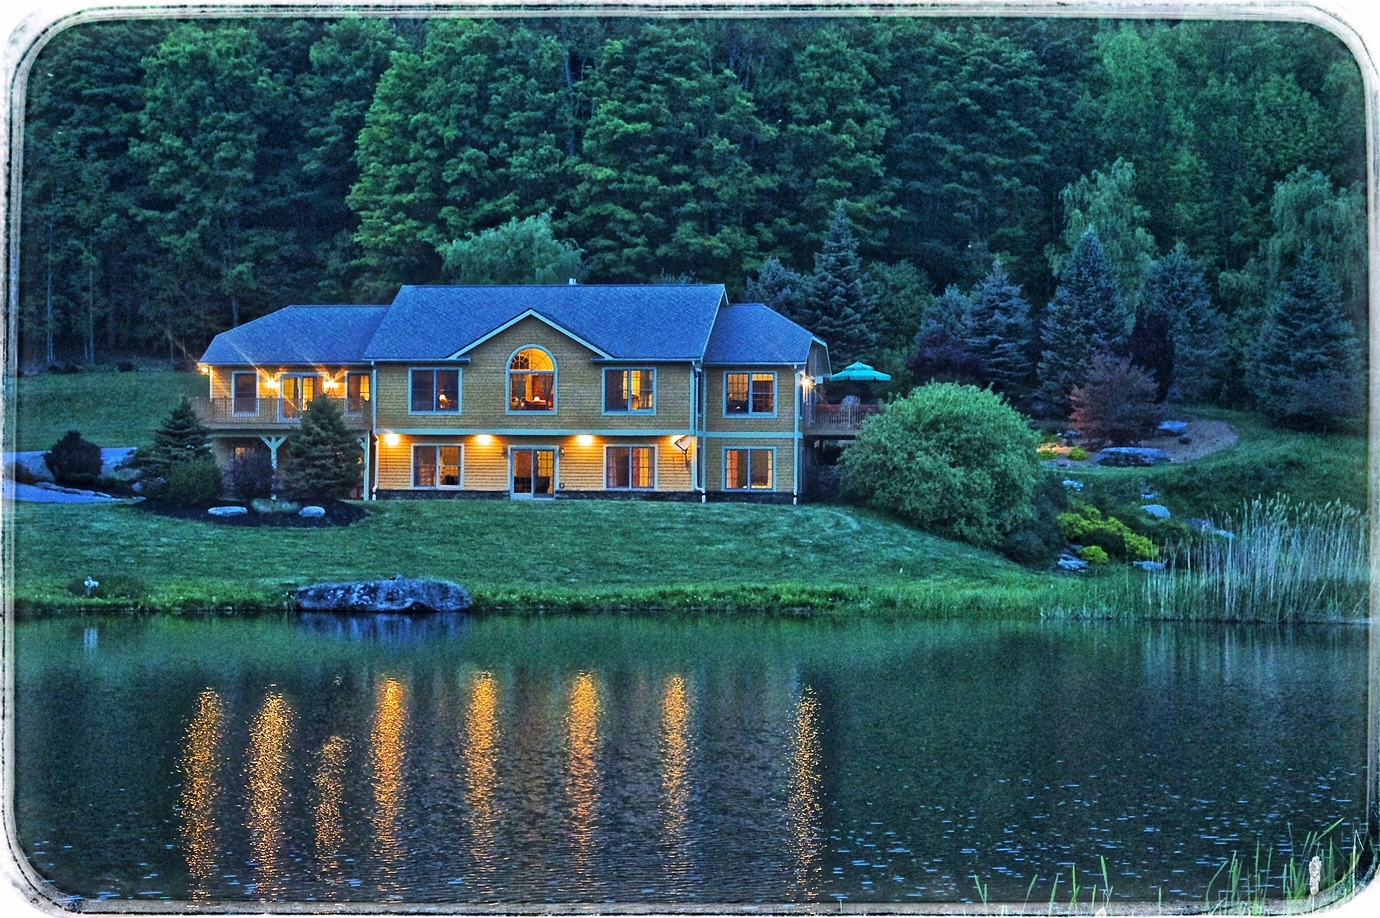 3135 Canada Hollow Road, Andes, New York 13731